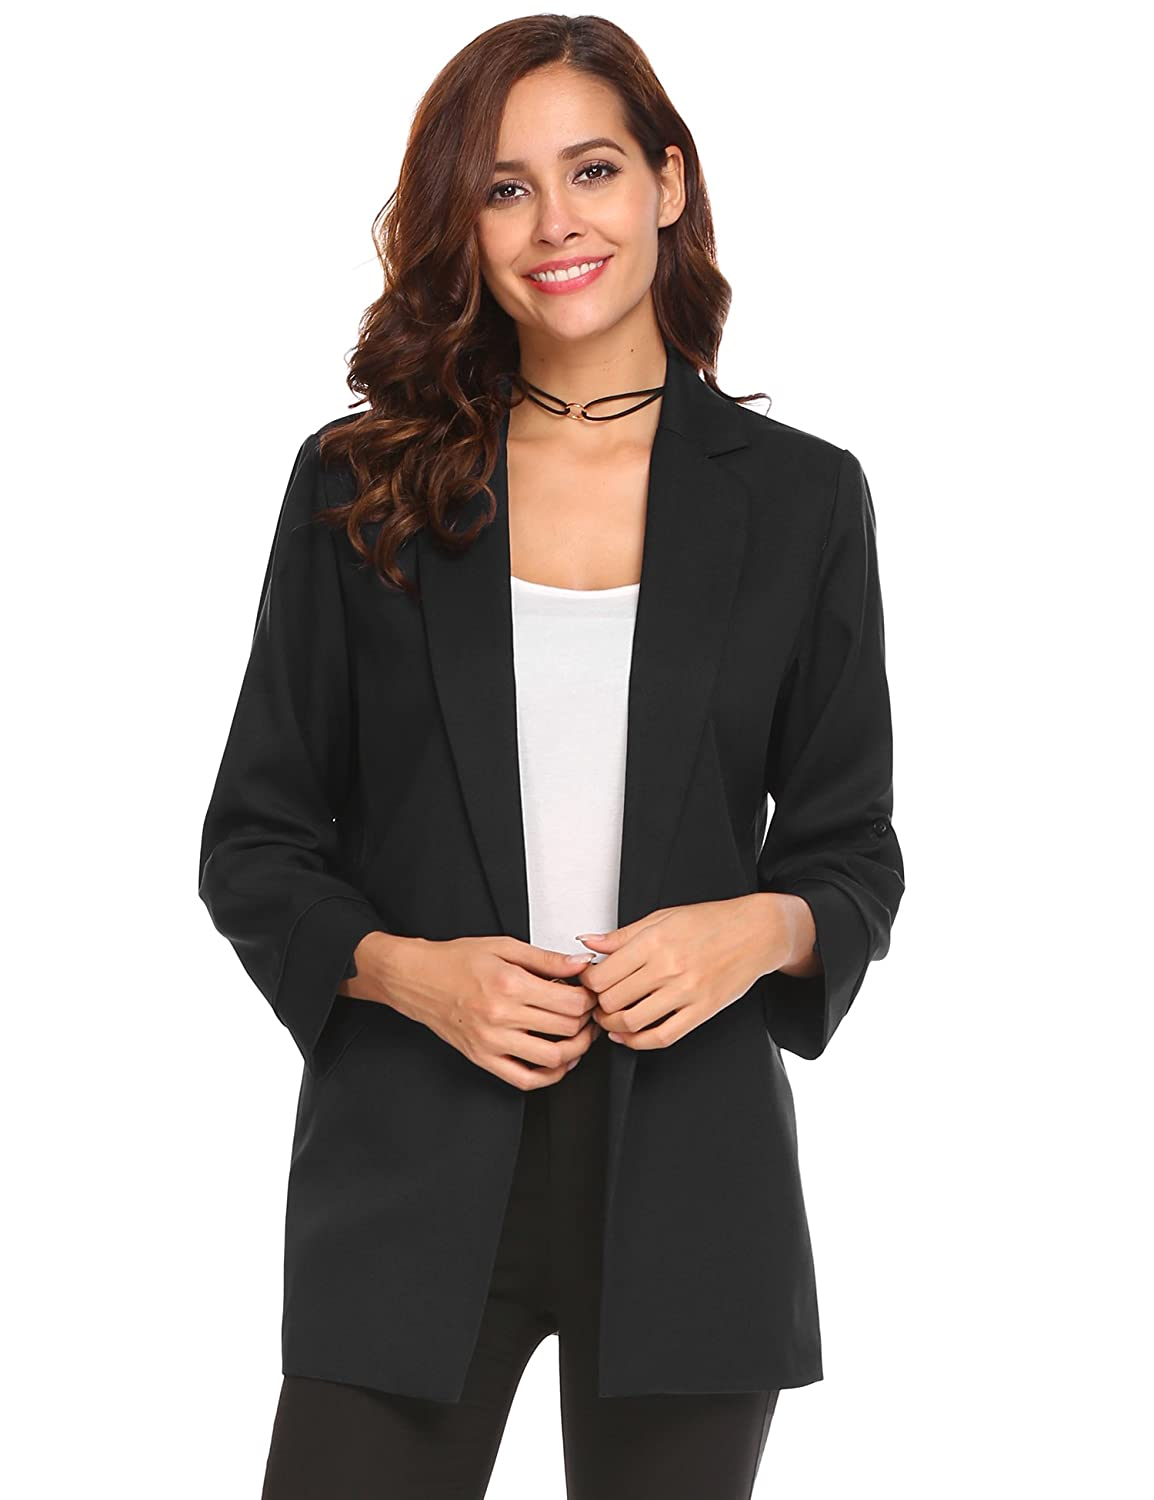 54f9e6d2052b Shoulder with pad design women suit coat. Roll up sleeve design women suit  coat, suitable for office or casual wear. Business lapel front open 3/5  sleeve ...